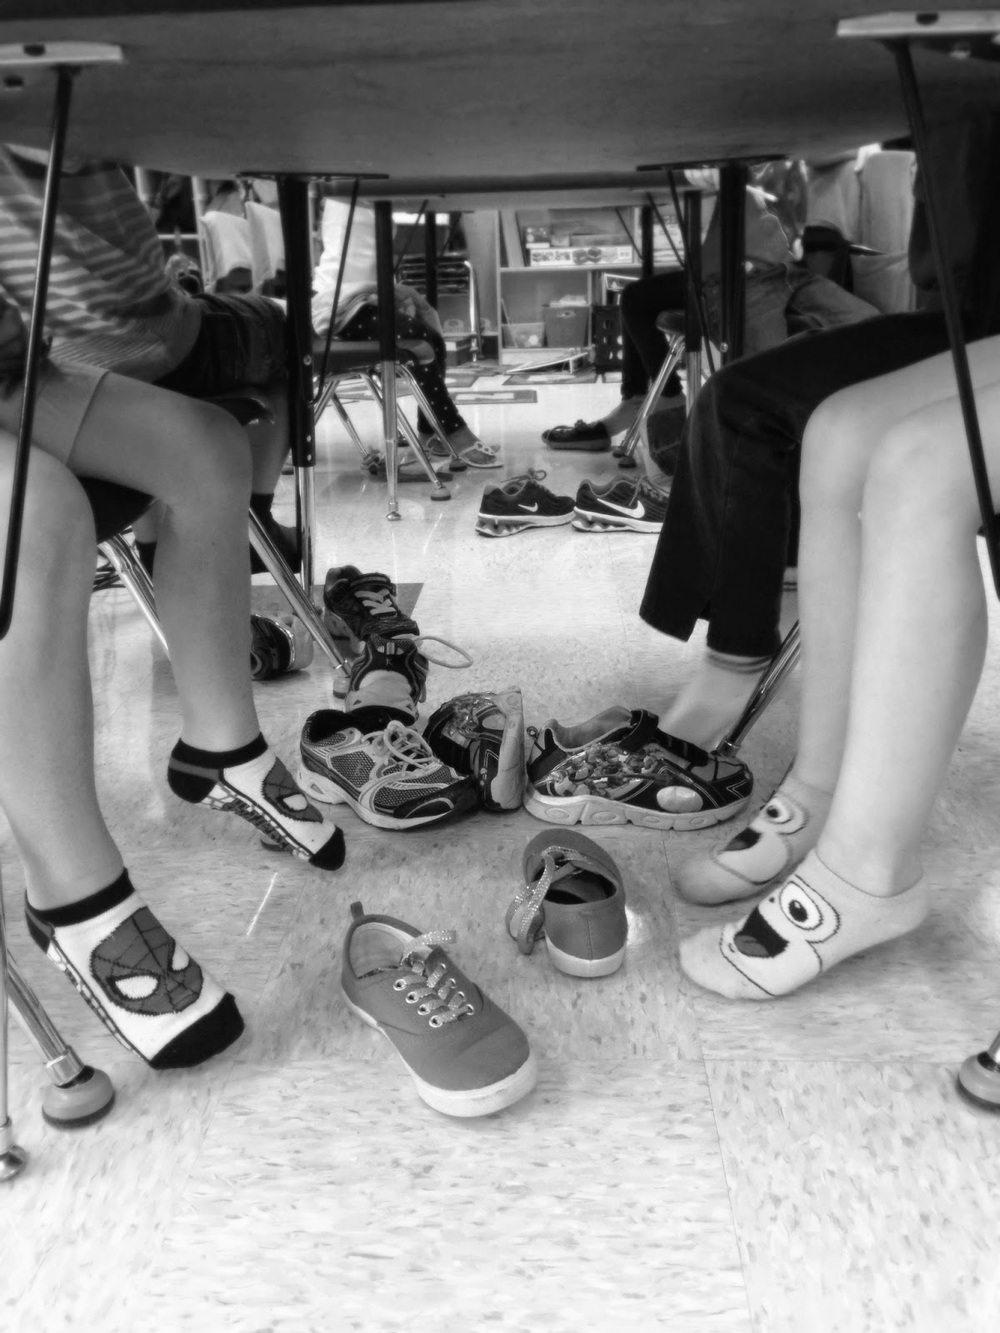 """The photo taken above was the first day I introduced this reward and all student got to """"test out"""" having their shoes off. However, I would strongly advise not having the whole class' shoes off for long periods of time. There will be a lot of shoes and laces flying everywhere if the fire alarm goes off!"""